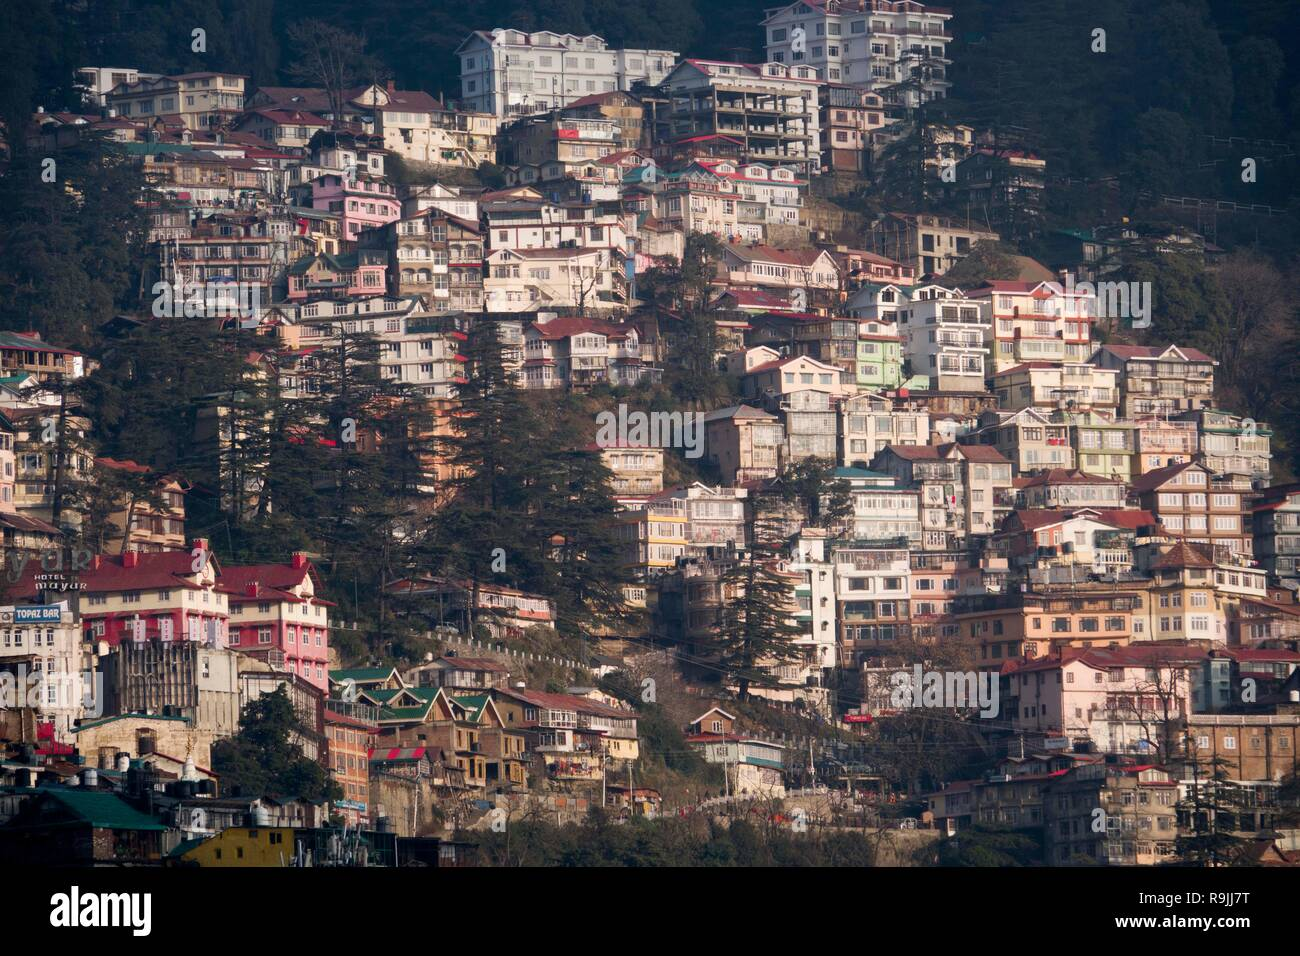 View of Shimla in Himachal Pradesh, India - Stock Image